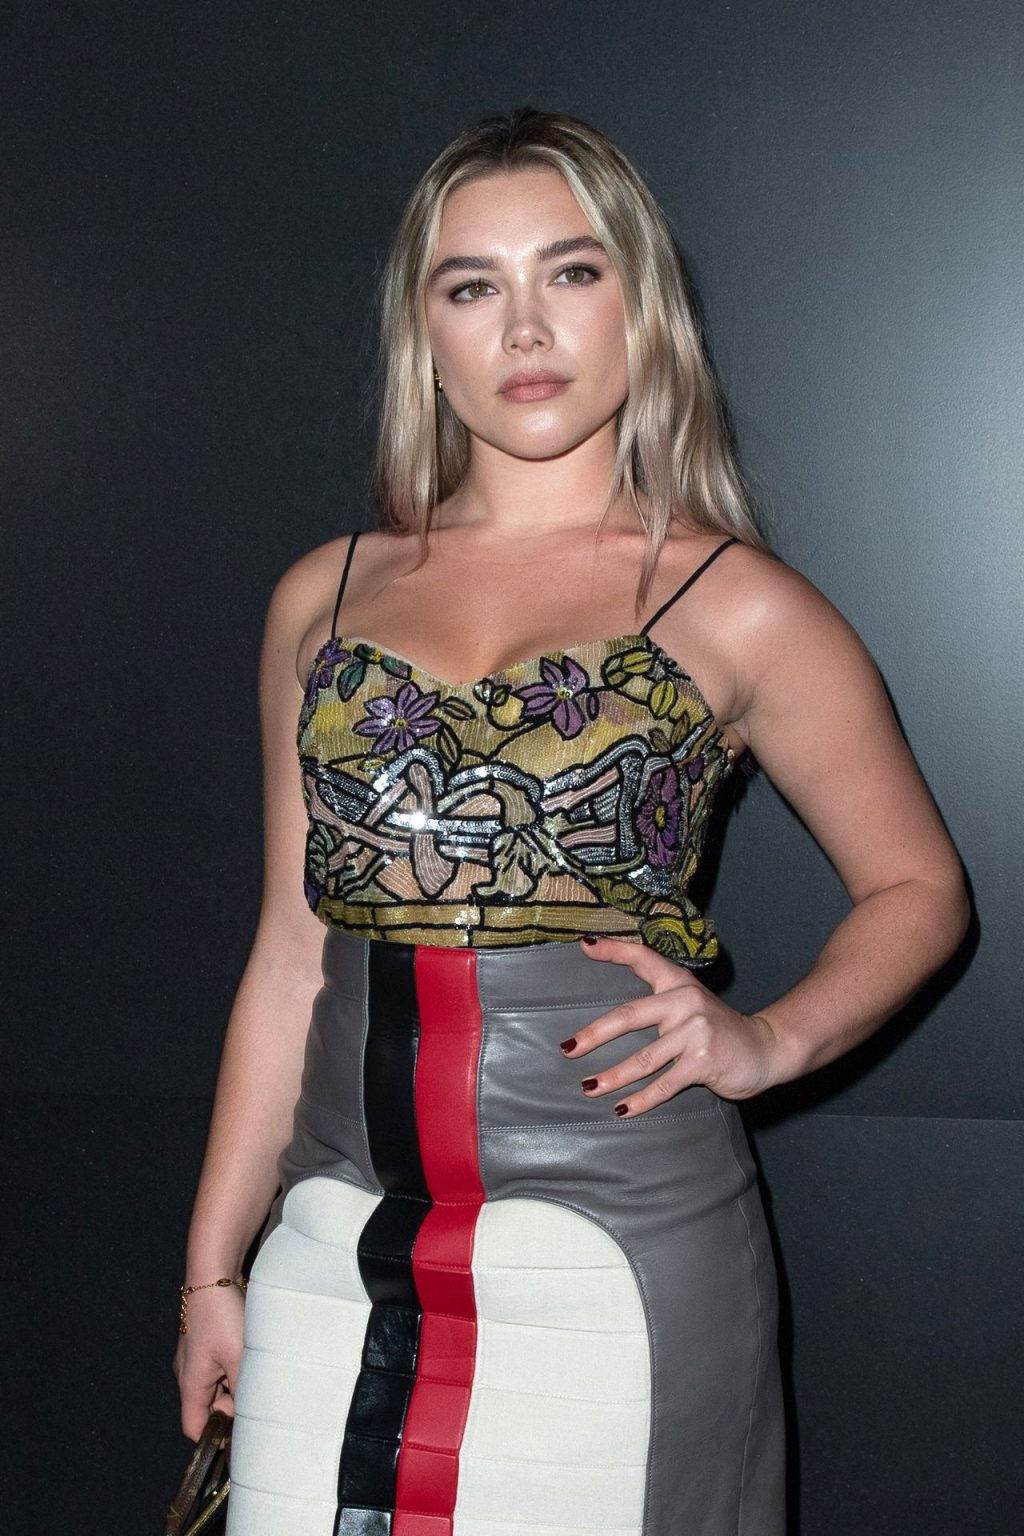 Florence Pugh Shows Her Cleavage & Panties at the Louis Vuitton Fashion Show (56 Photos)